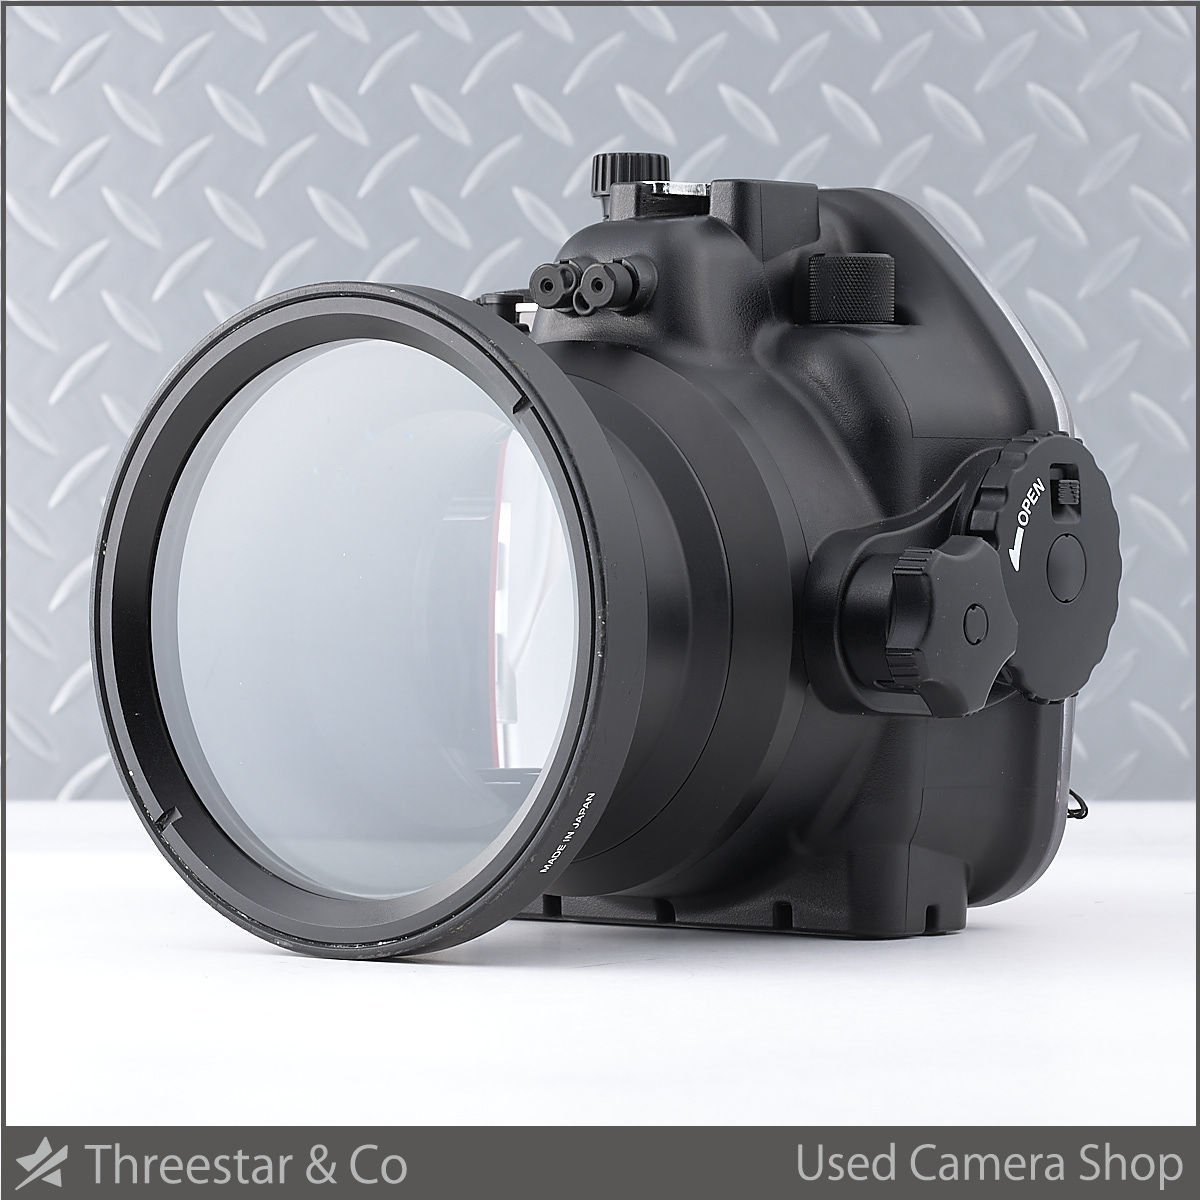 OLYMPUS オリンパス PT-E06 PPO-E05 E-620用 防水プロテクター 耐圧検査済み